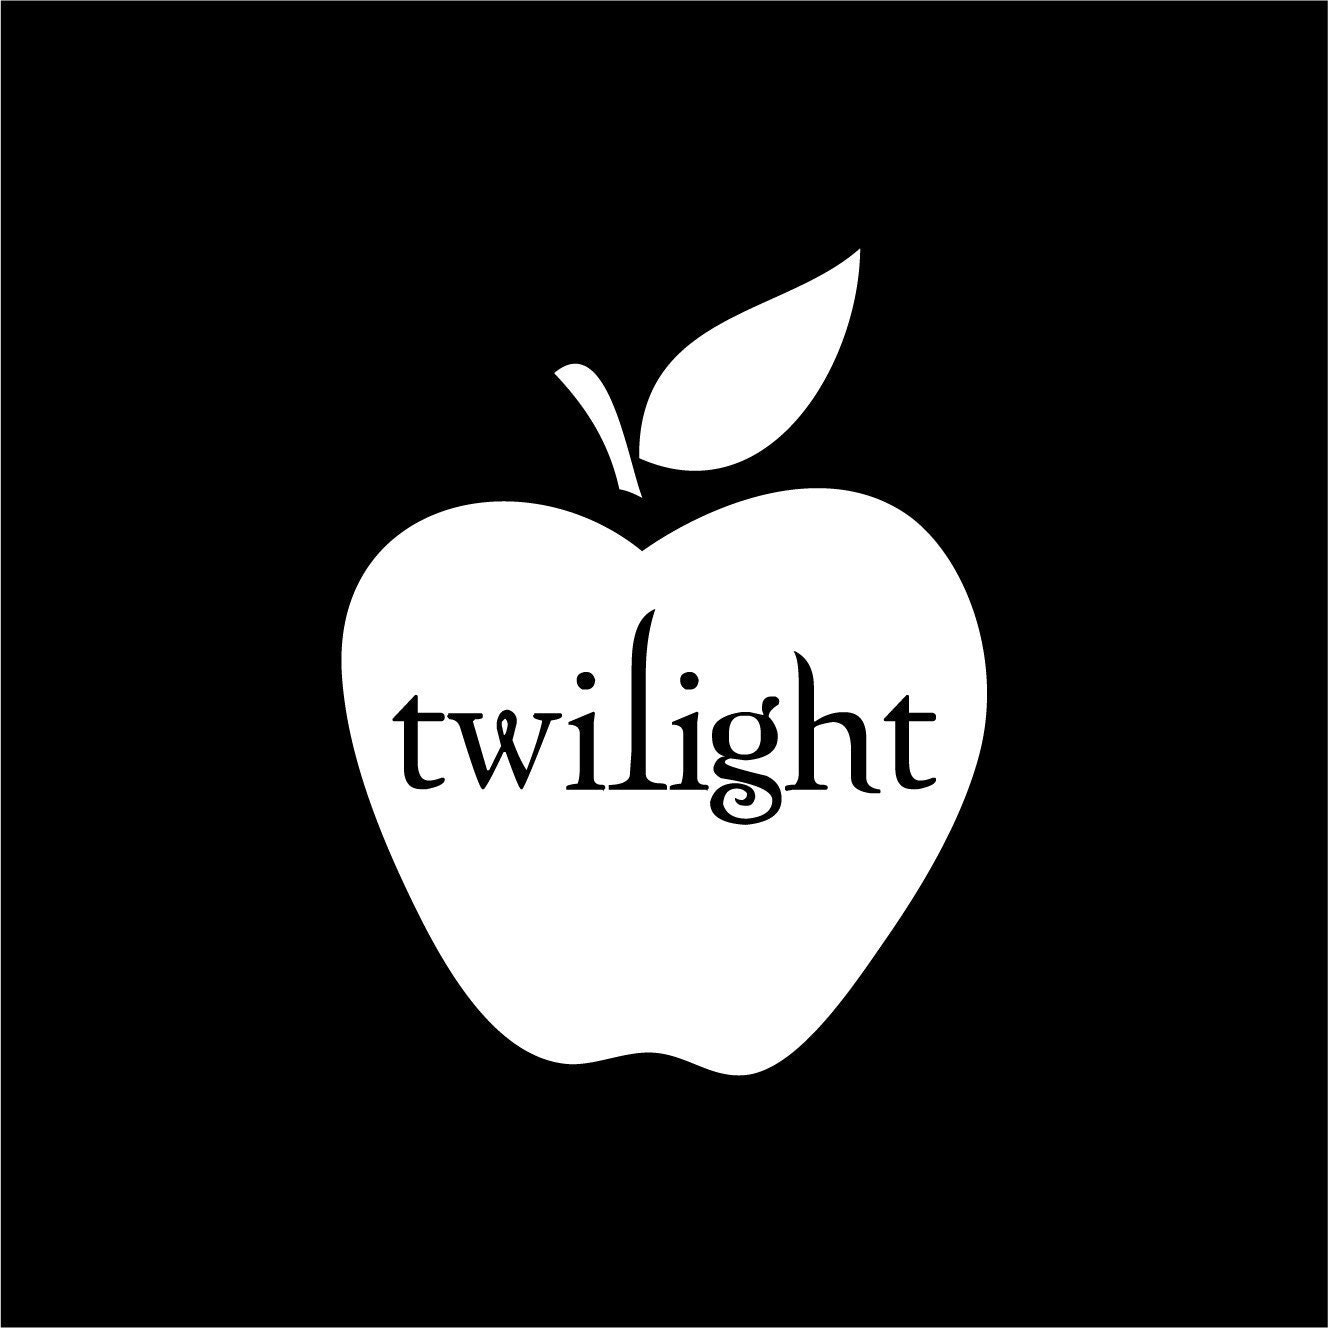 Twilight Apple Vinyl Wall Decal Or Bumper Sticker By